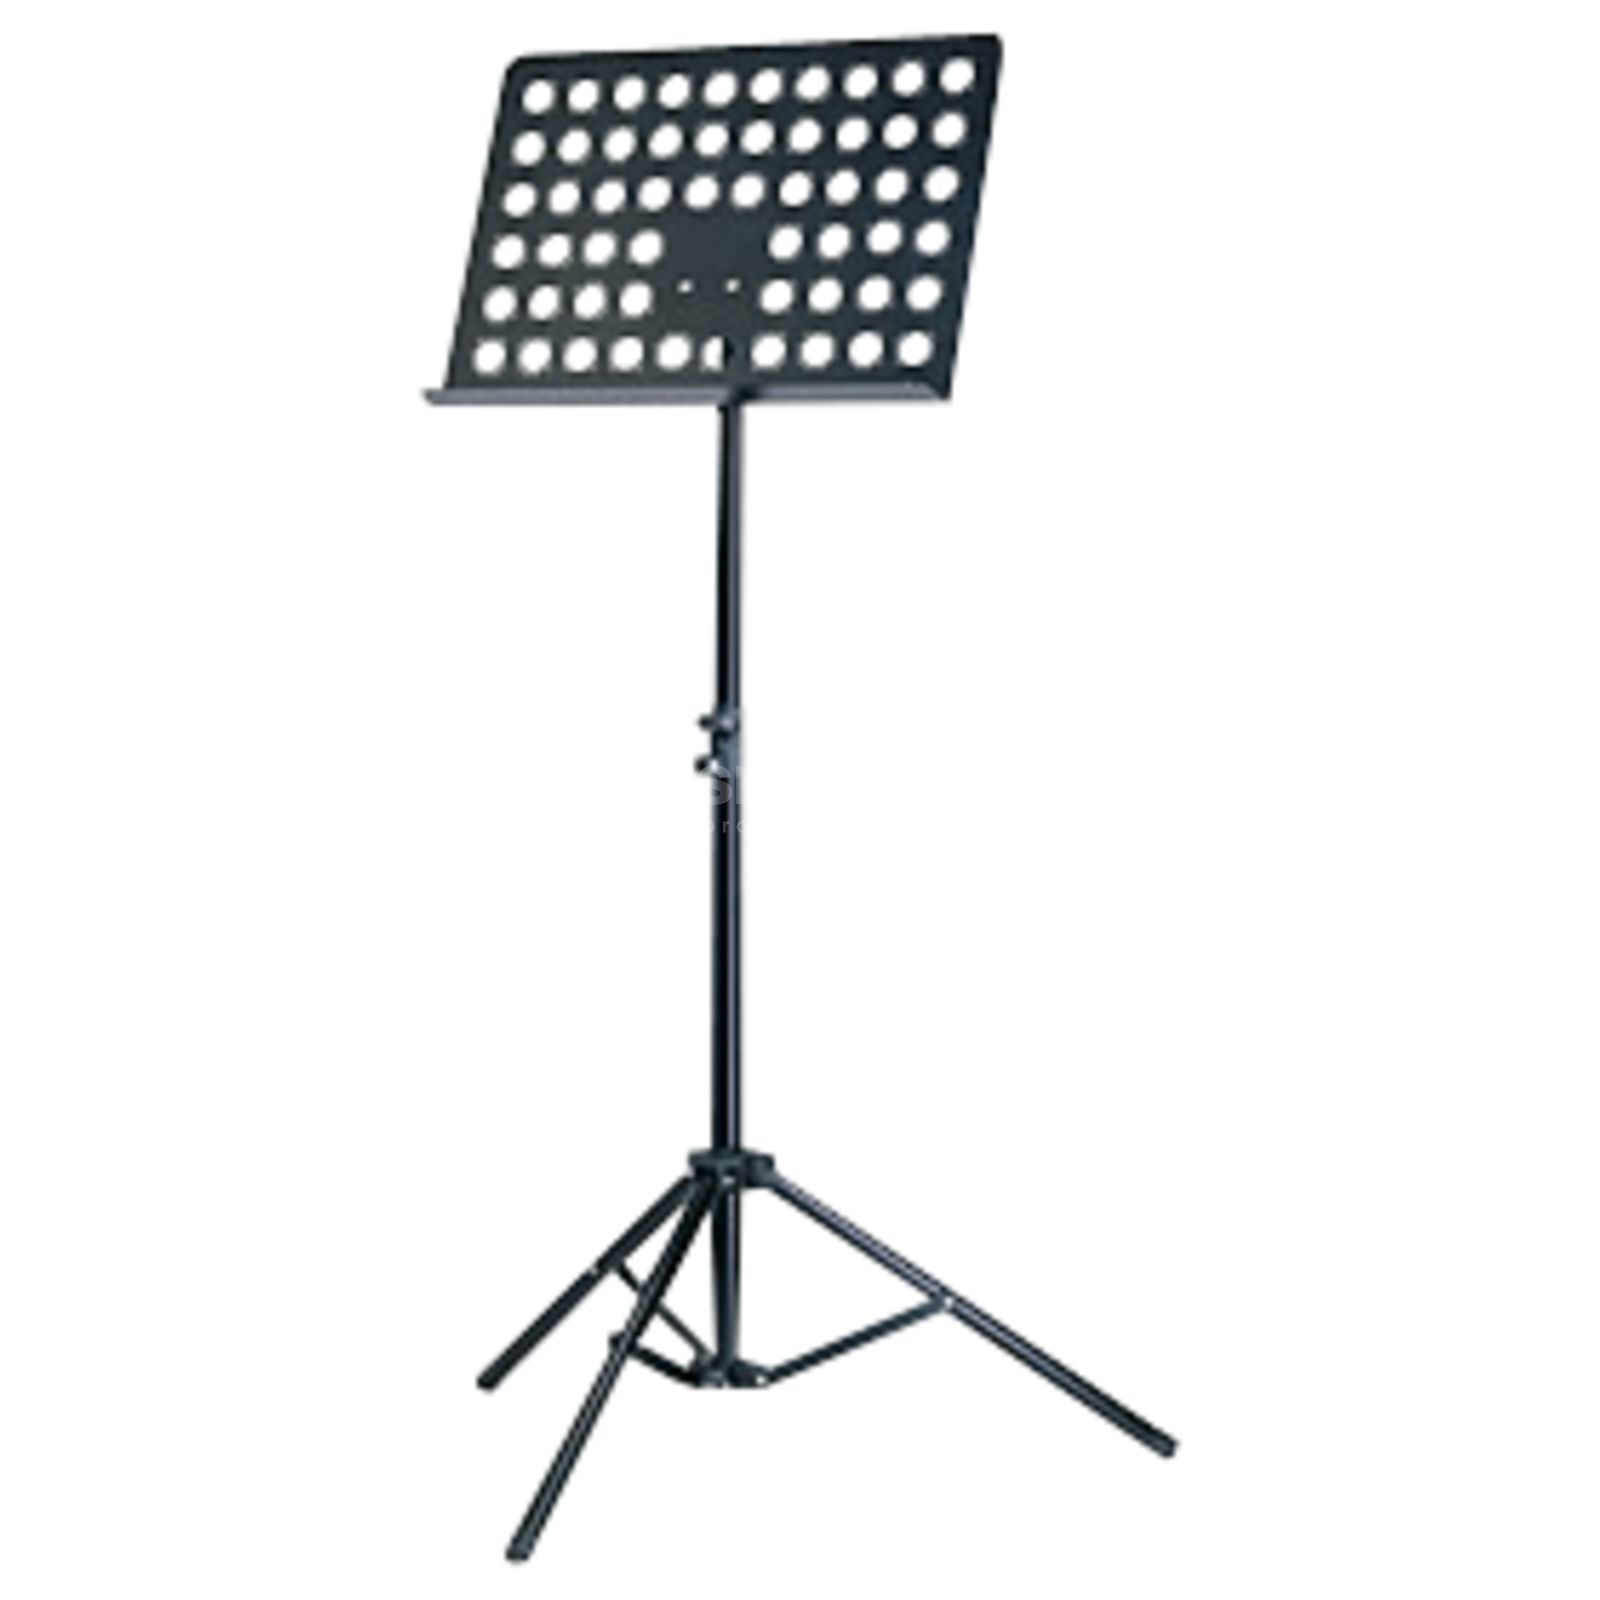 König & Meyer 11899 Orchestra Music Stand  Product Image